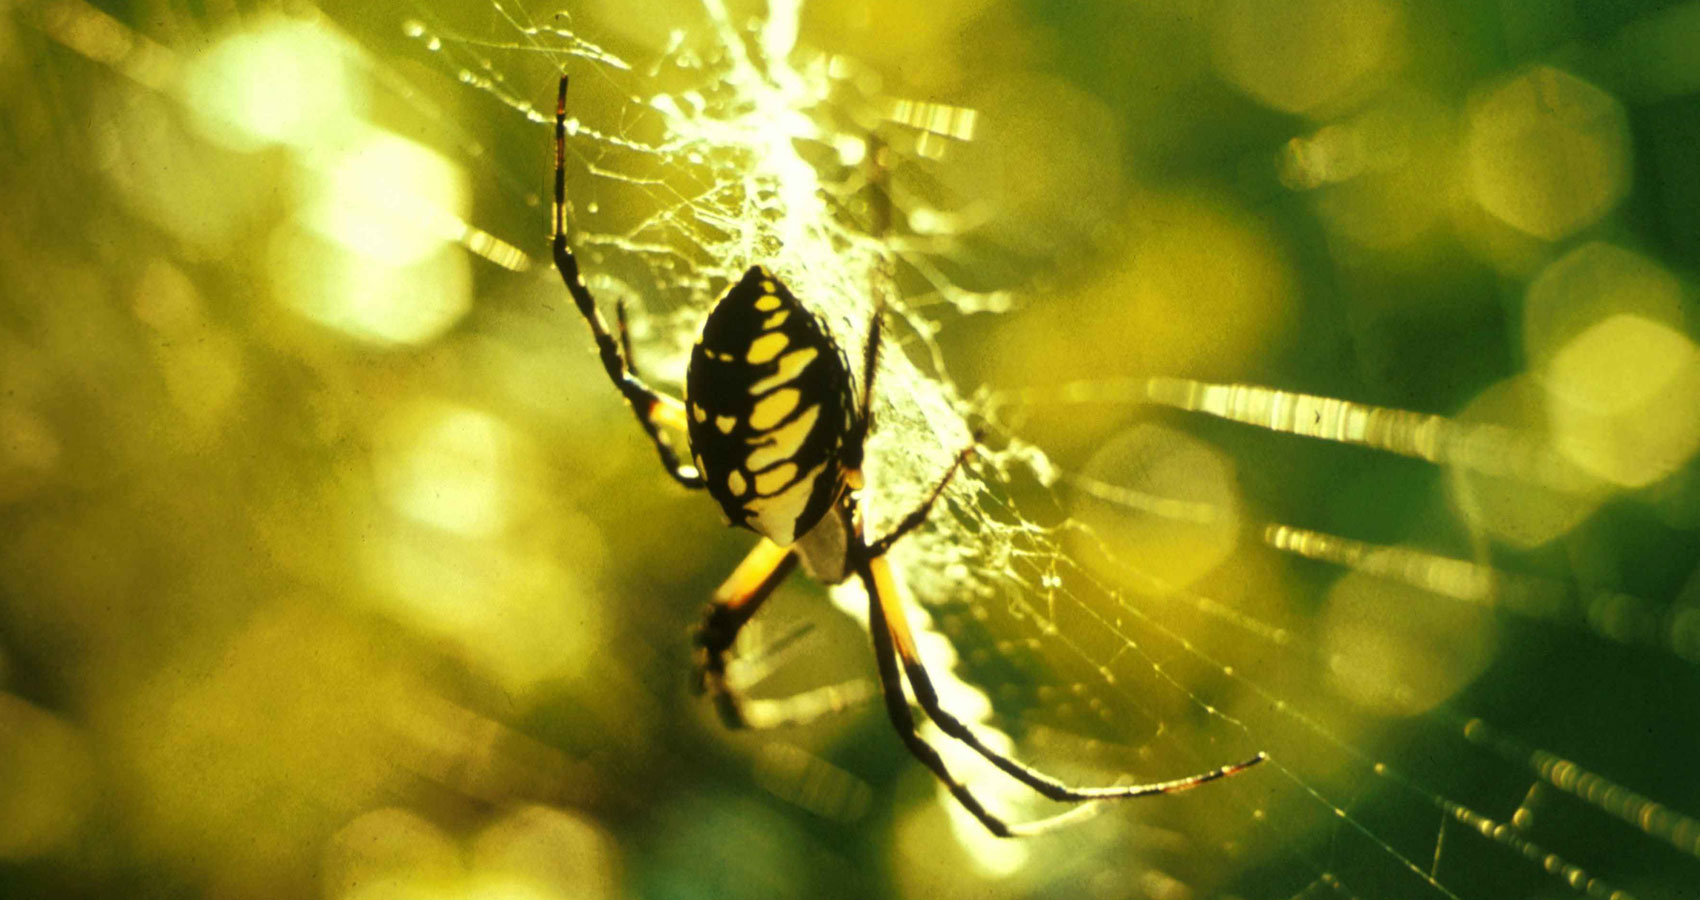 The Spider's Kiss, poetry written by Art Blacktooth at Spillwords.com